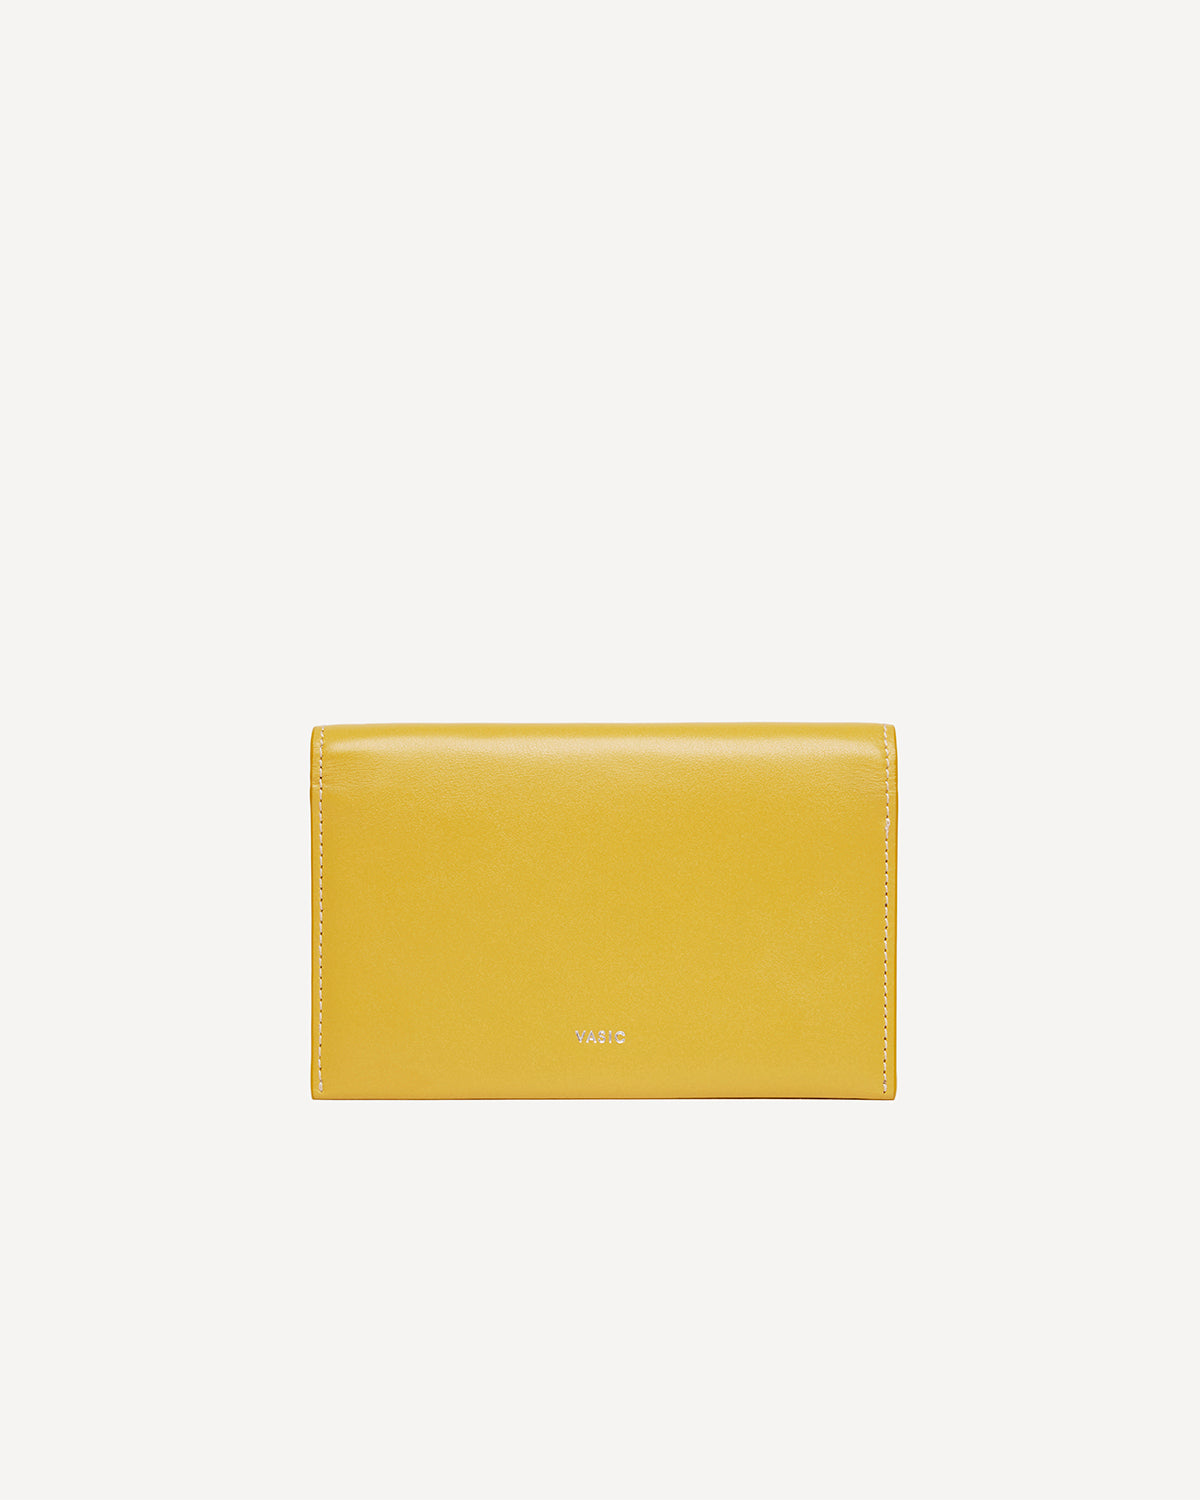 ENVELOPE MINI,ペア